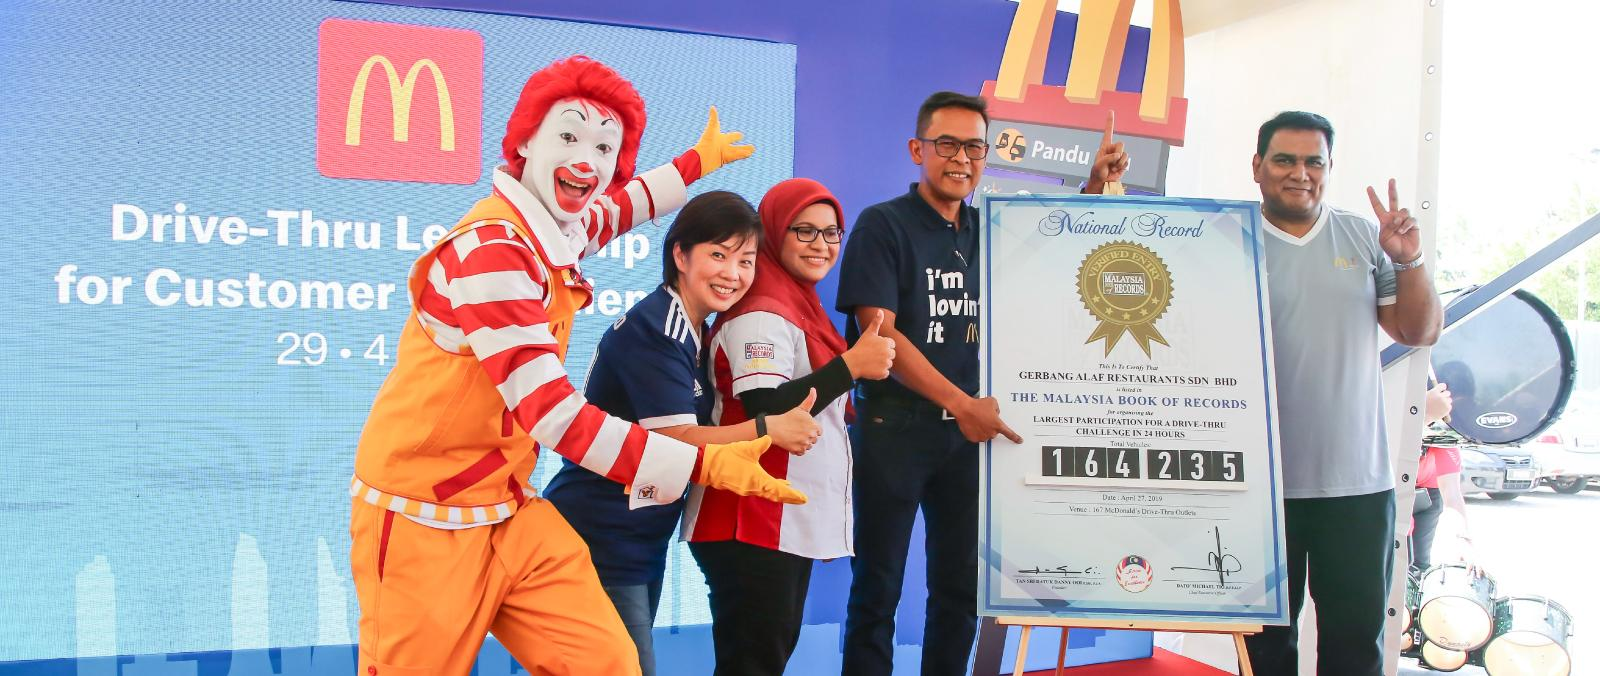 McDonald's Malaysia Ramps Up Drive-Thru Business to Suit  Consumers' On-the-Go Lifestyles's image'